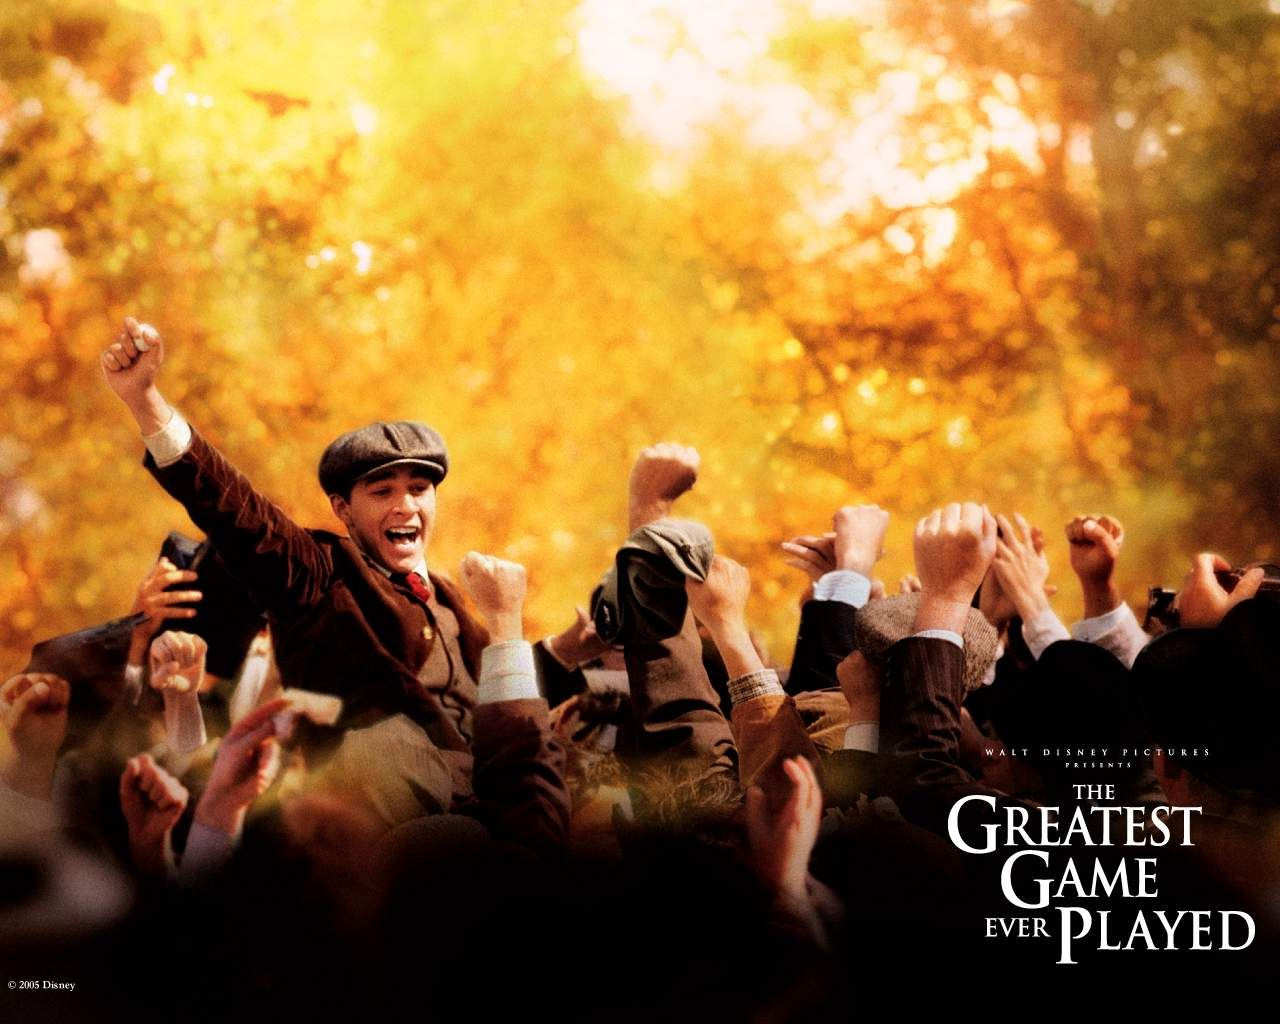 Watch Streaming HD The Greatest Game Ever Played, starring